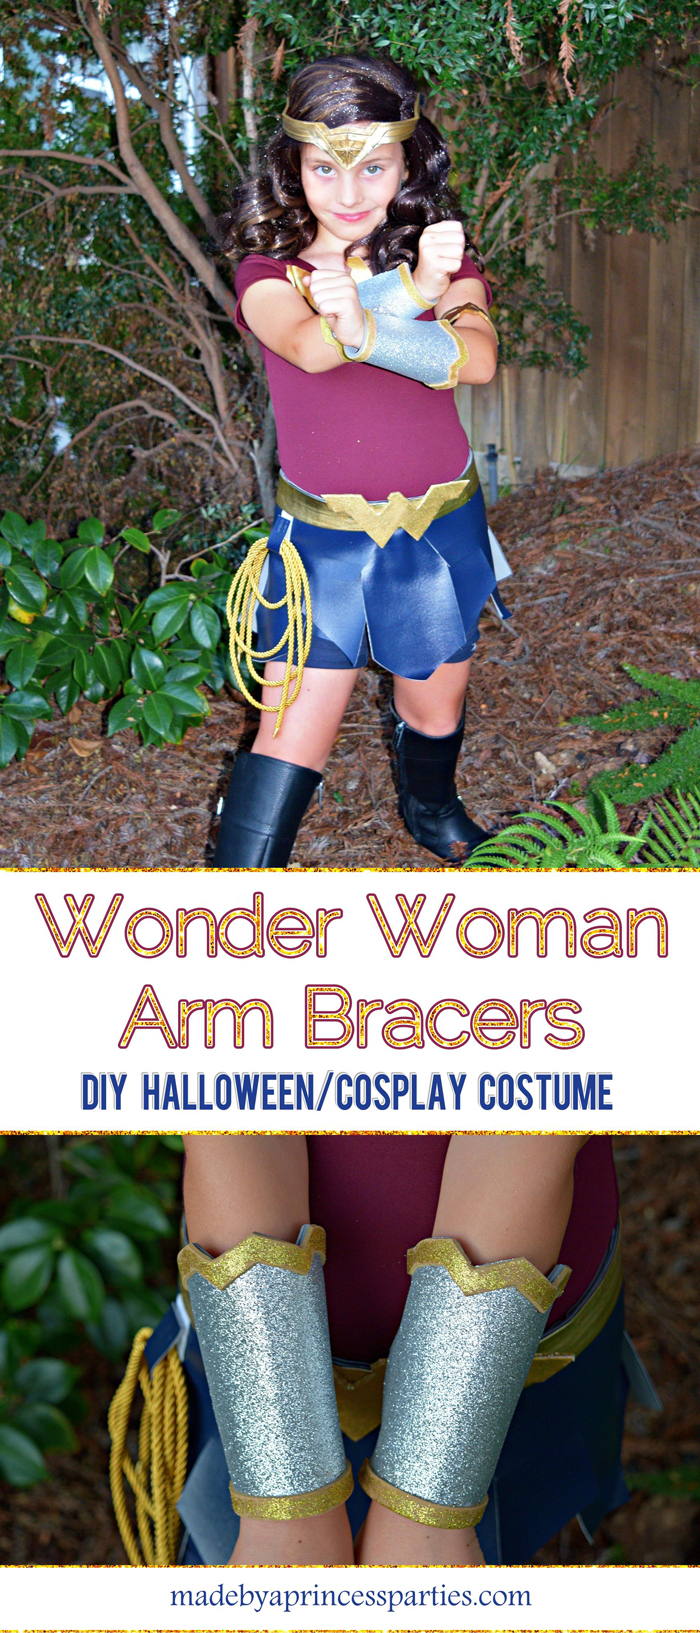 Wonder Woman Movie Arm Bracers Costume DIY perfect for cosplay or halloween pin for later MadebyaPrincess